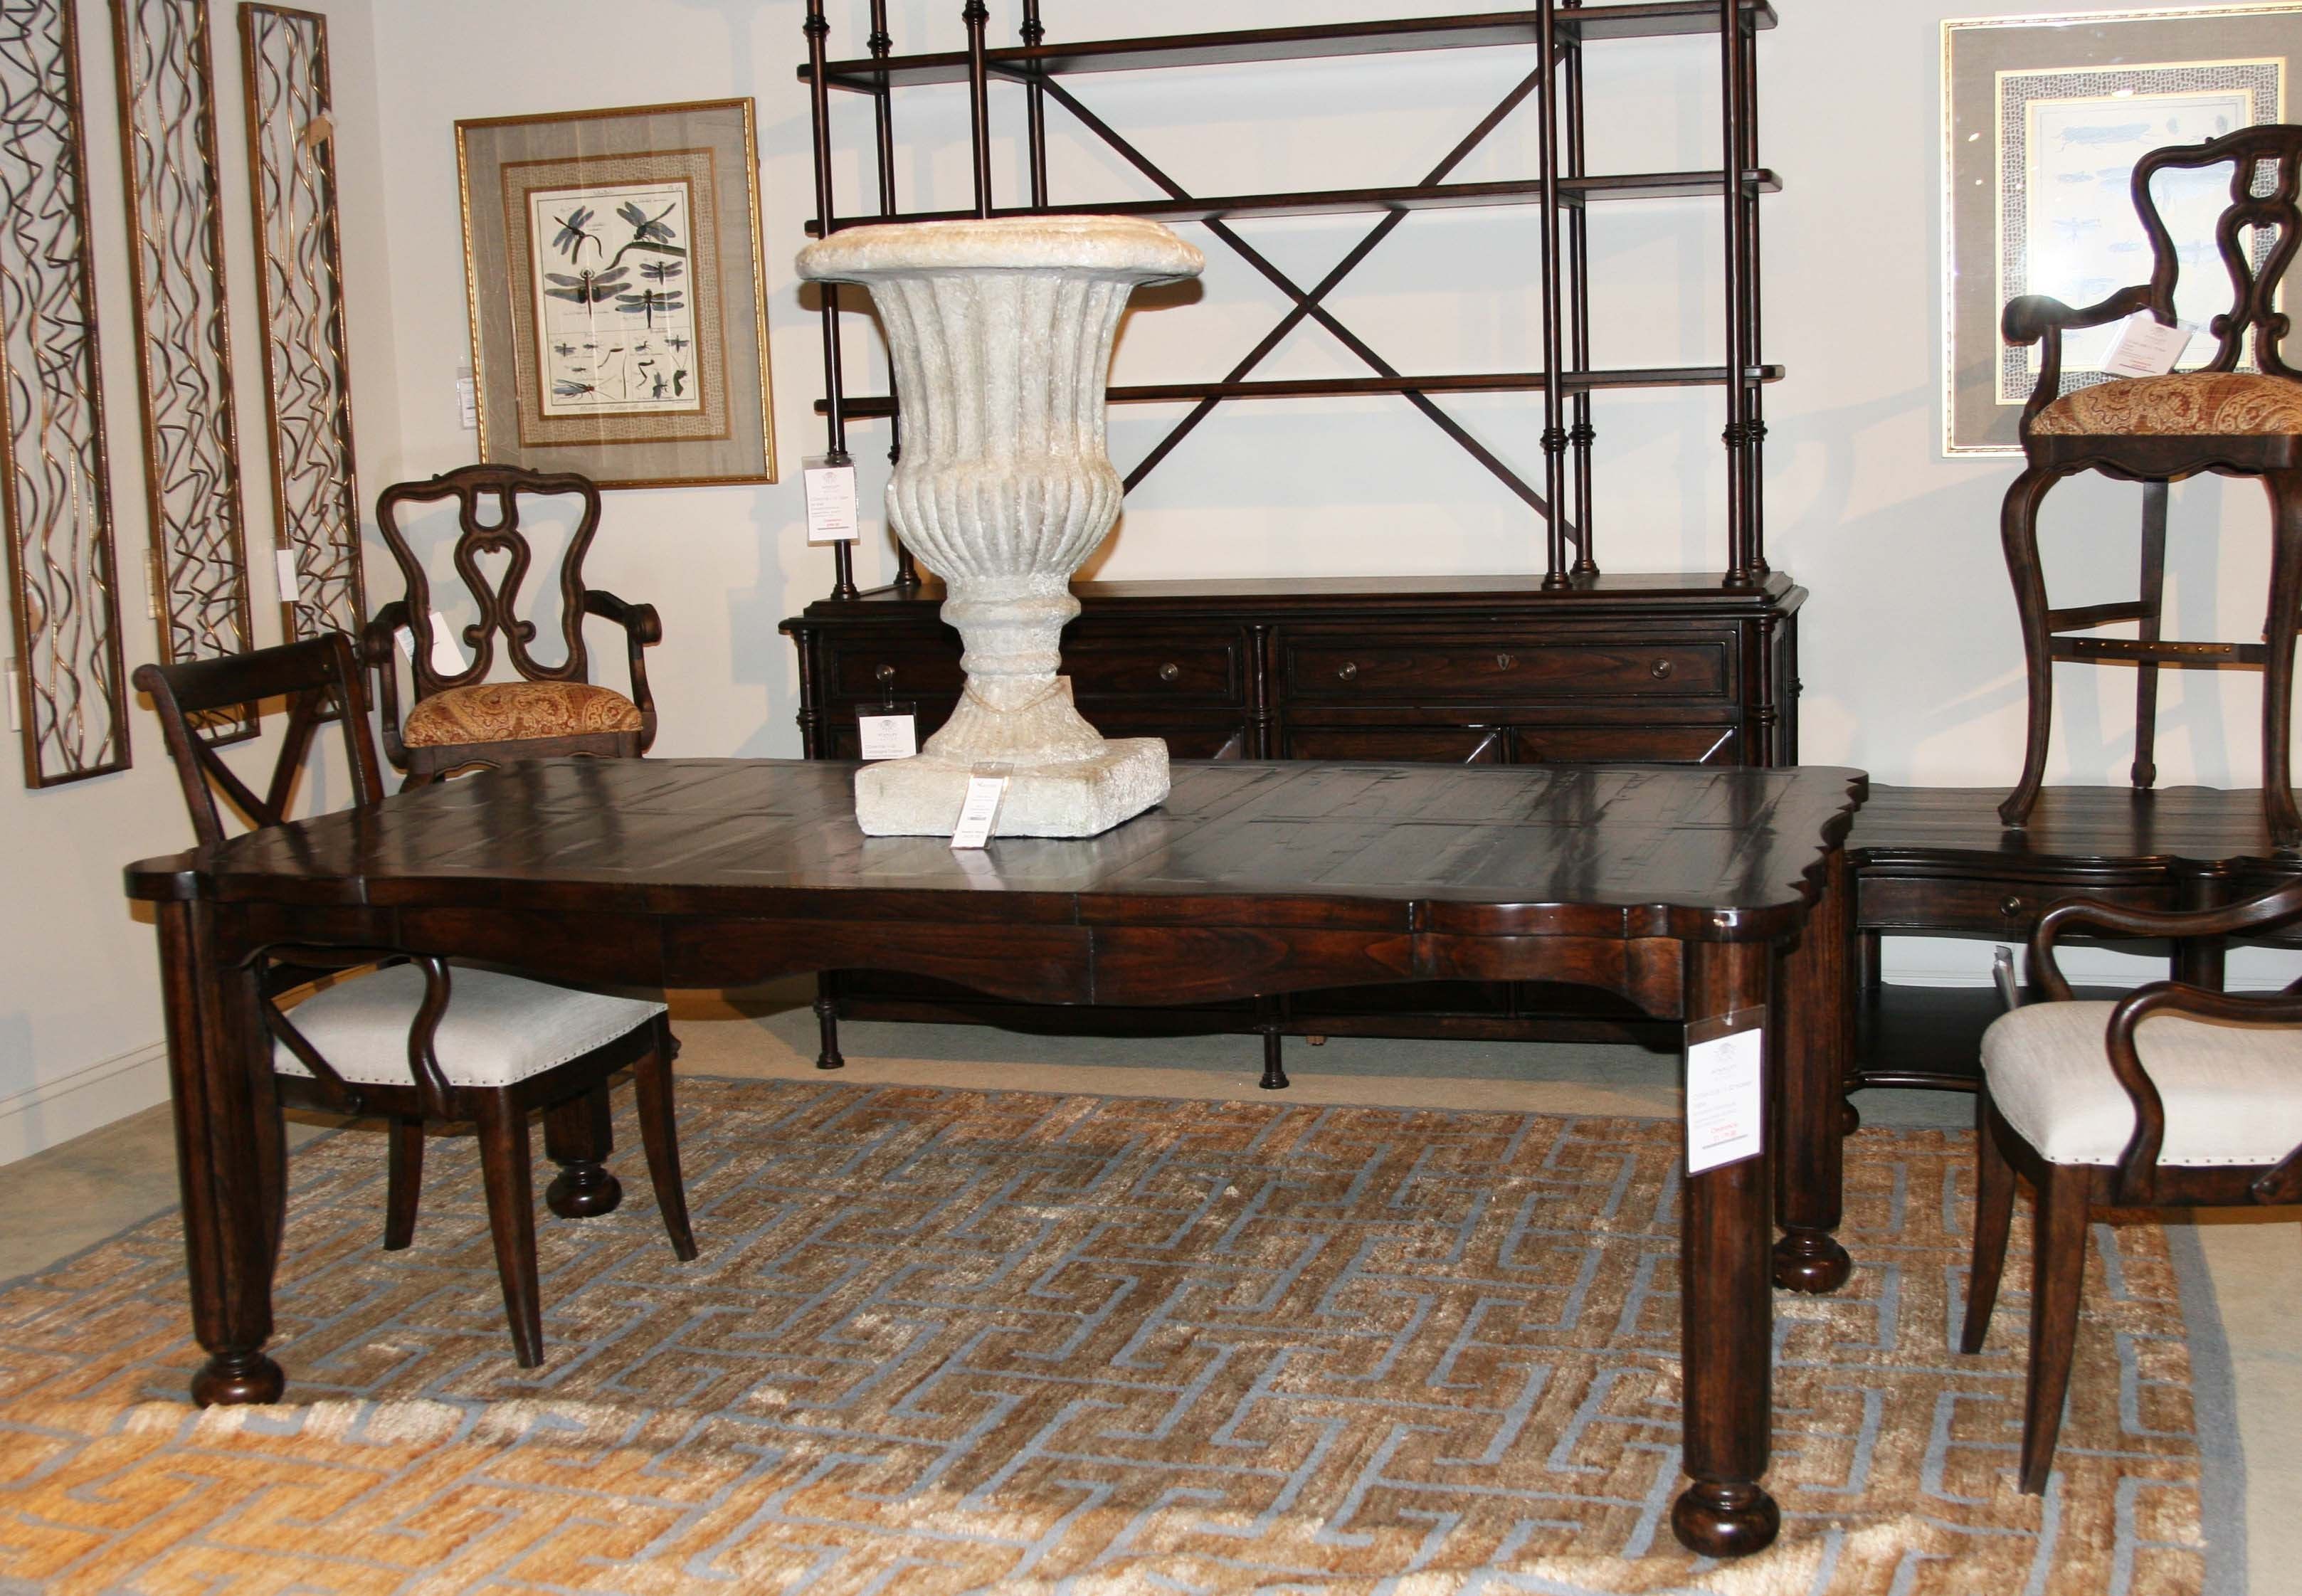 Awesome Stanley Furniture Outlet By Goodu0027s European Farmhouse Market Table By Stanley  Furniture 018 11